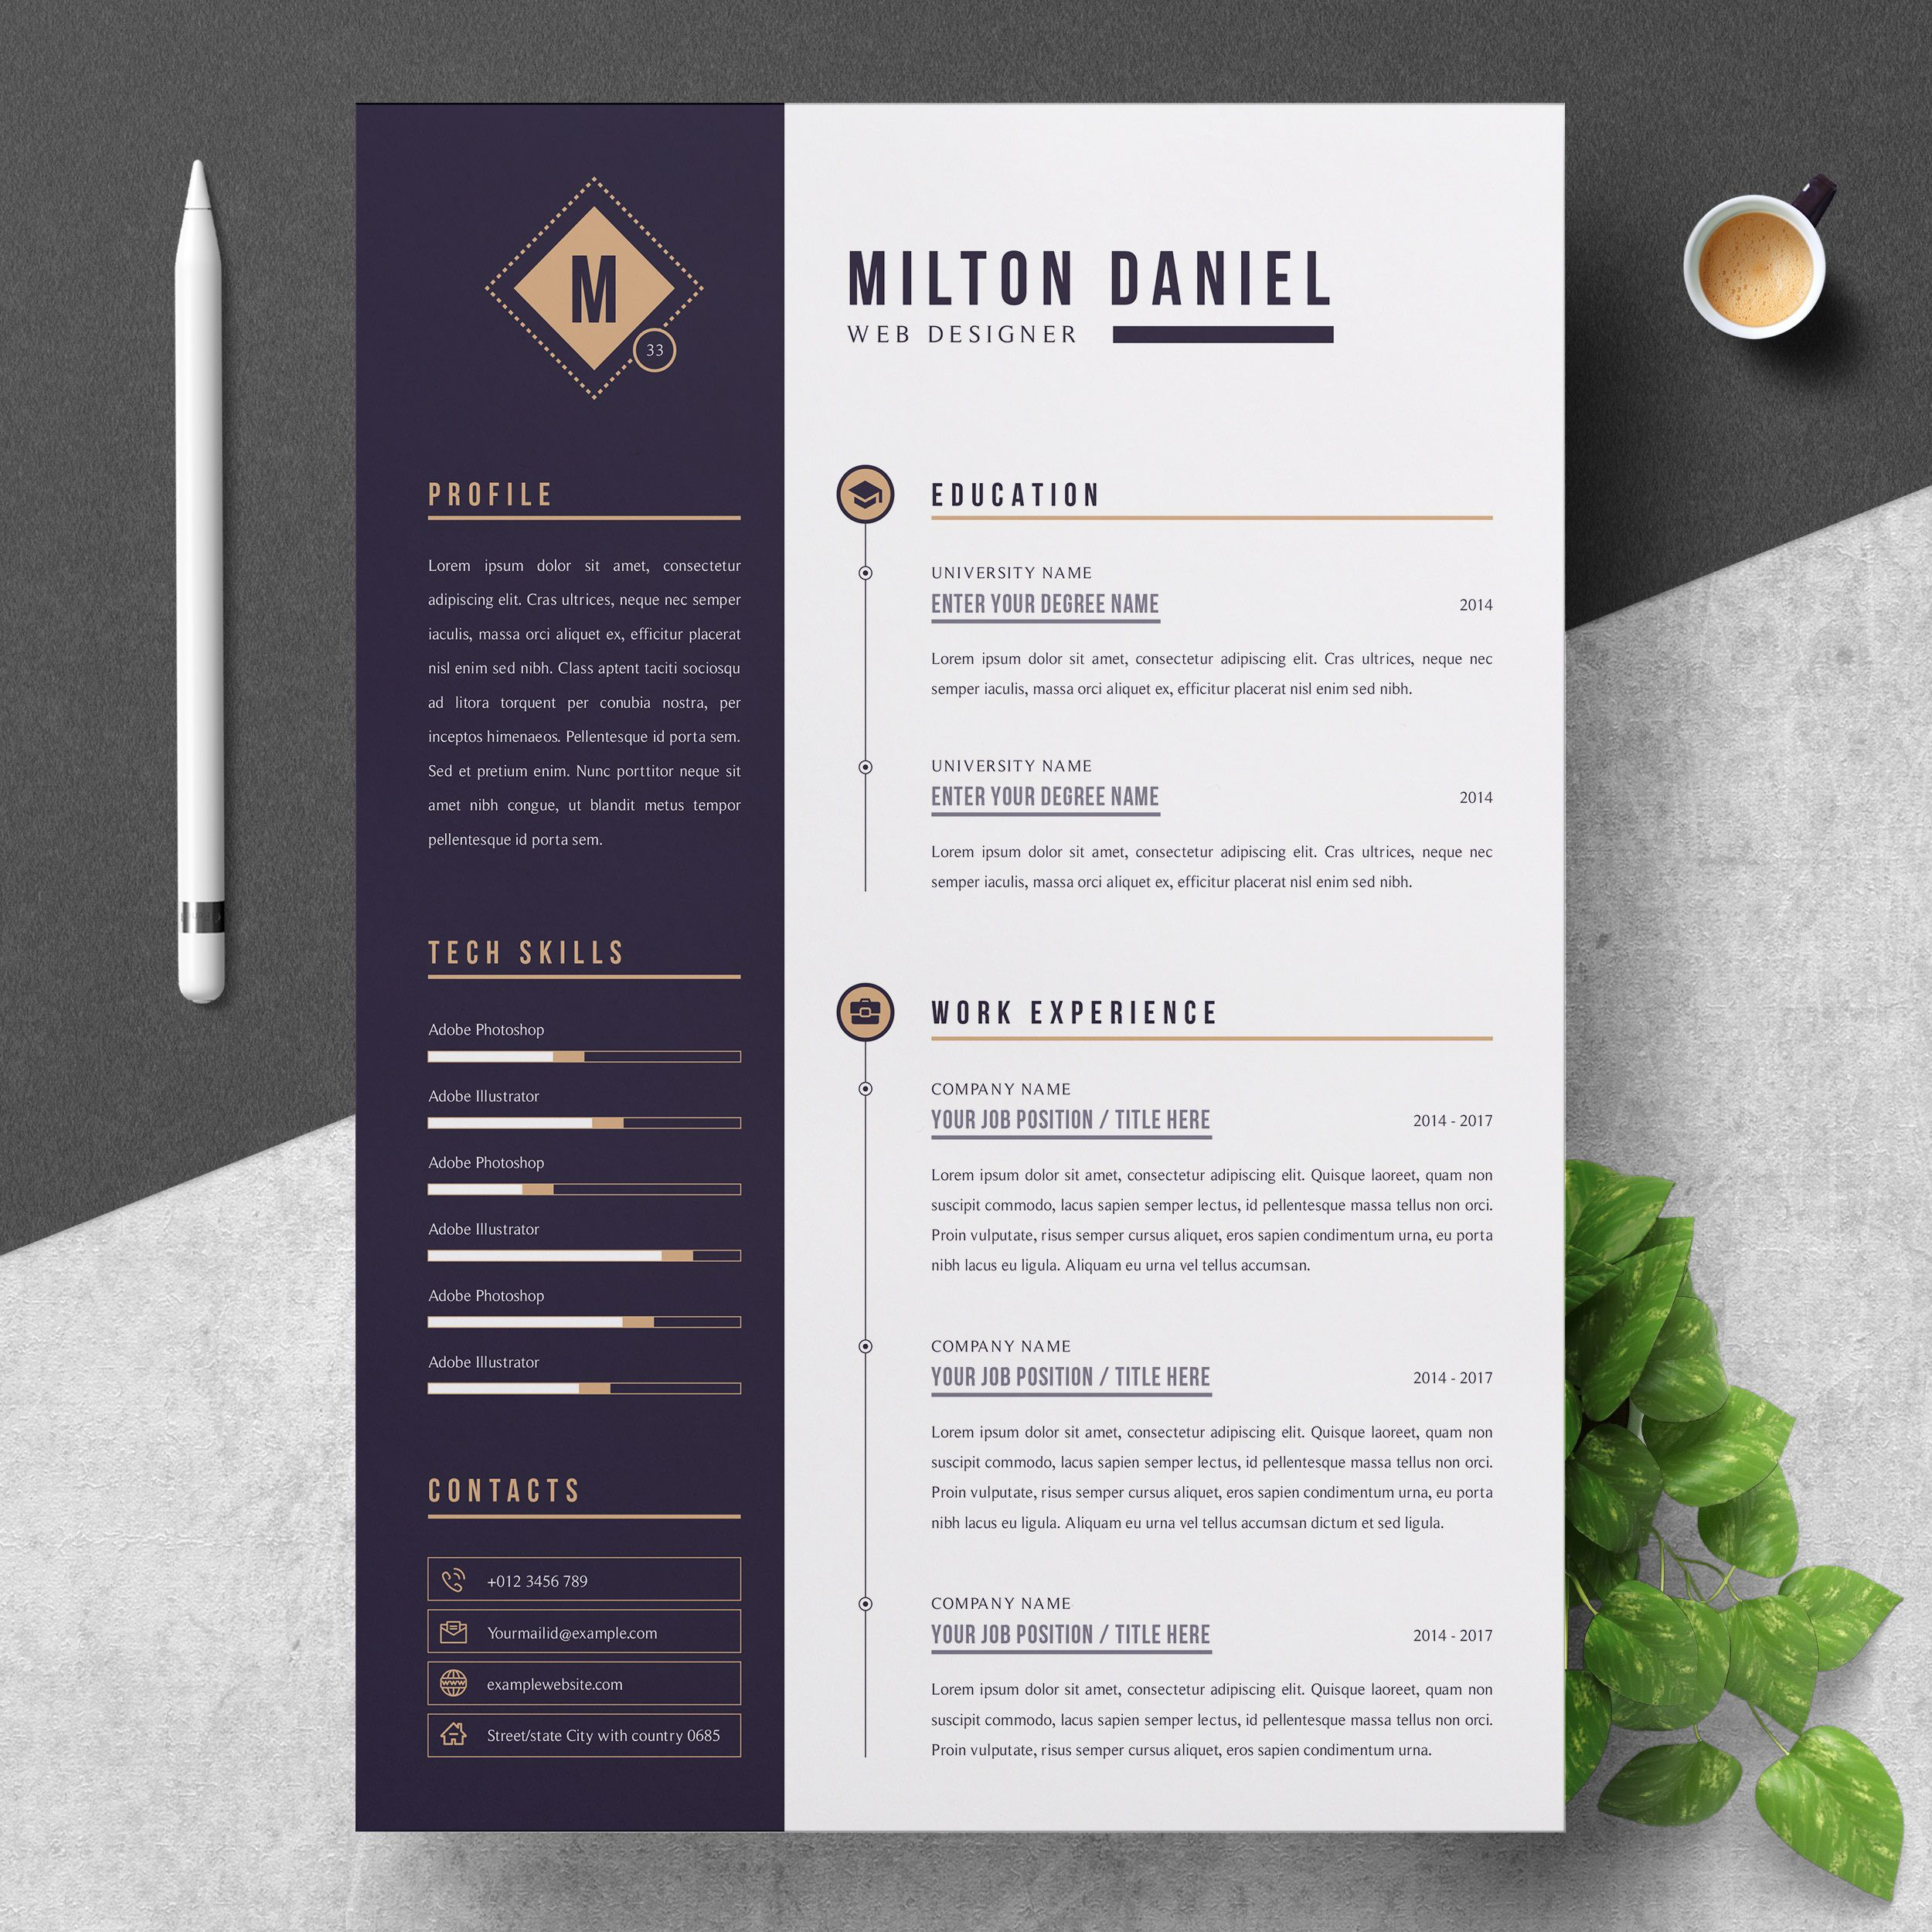 000 Beautiful Professional Resume Template Free Download Word Concept  Cv 2020 Format With PhotoFull